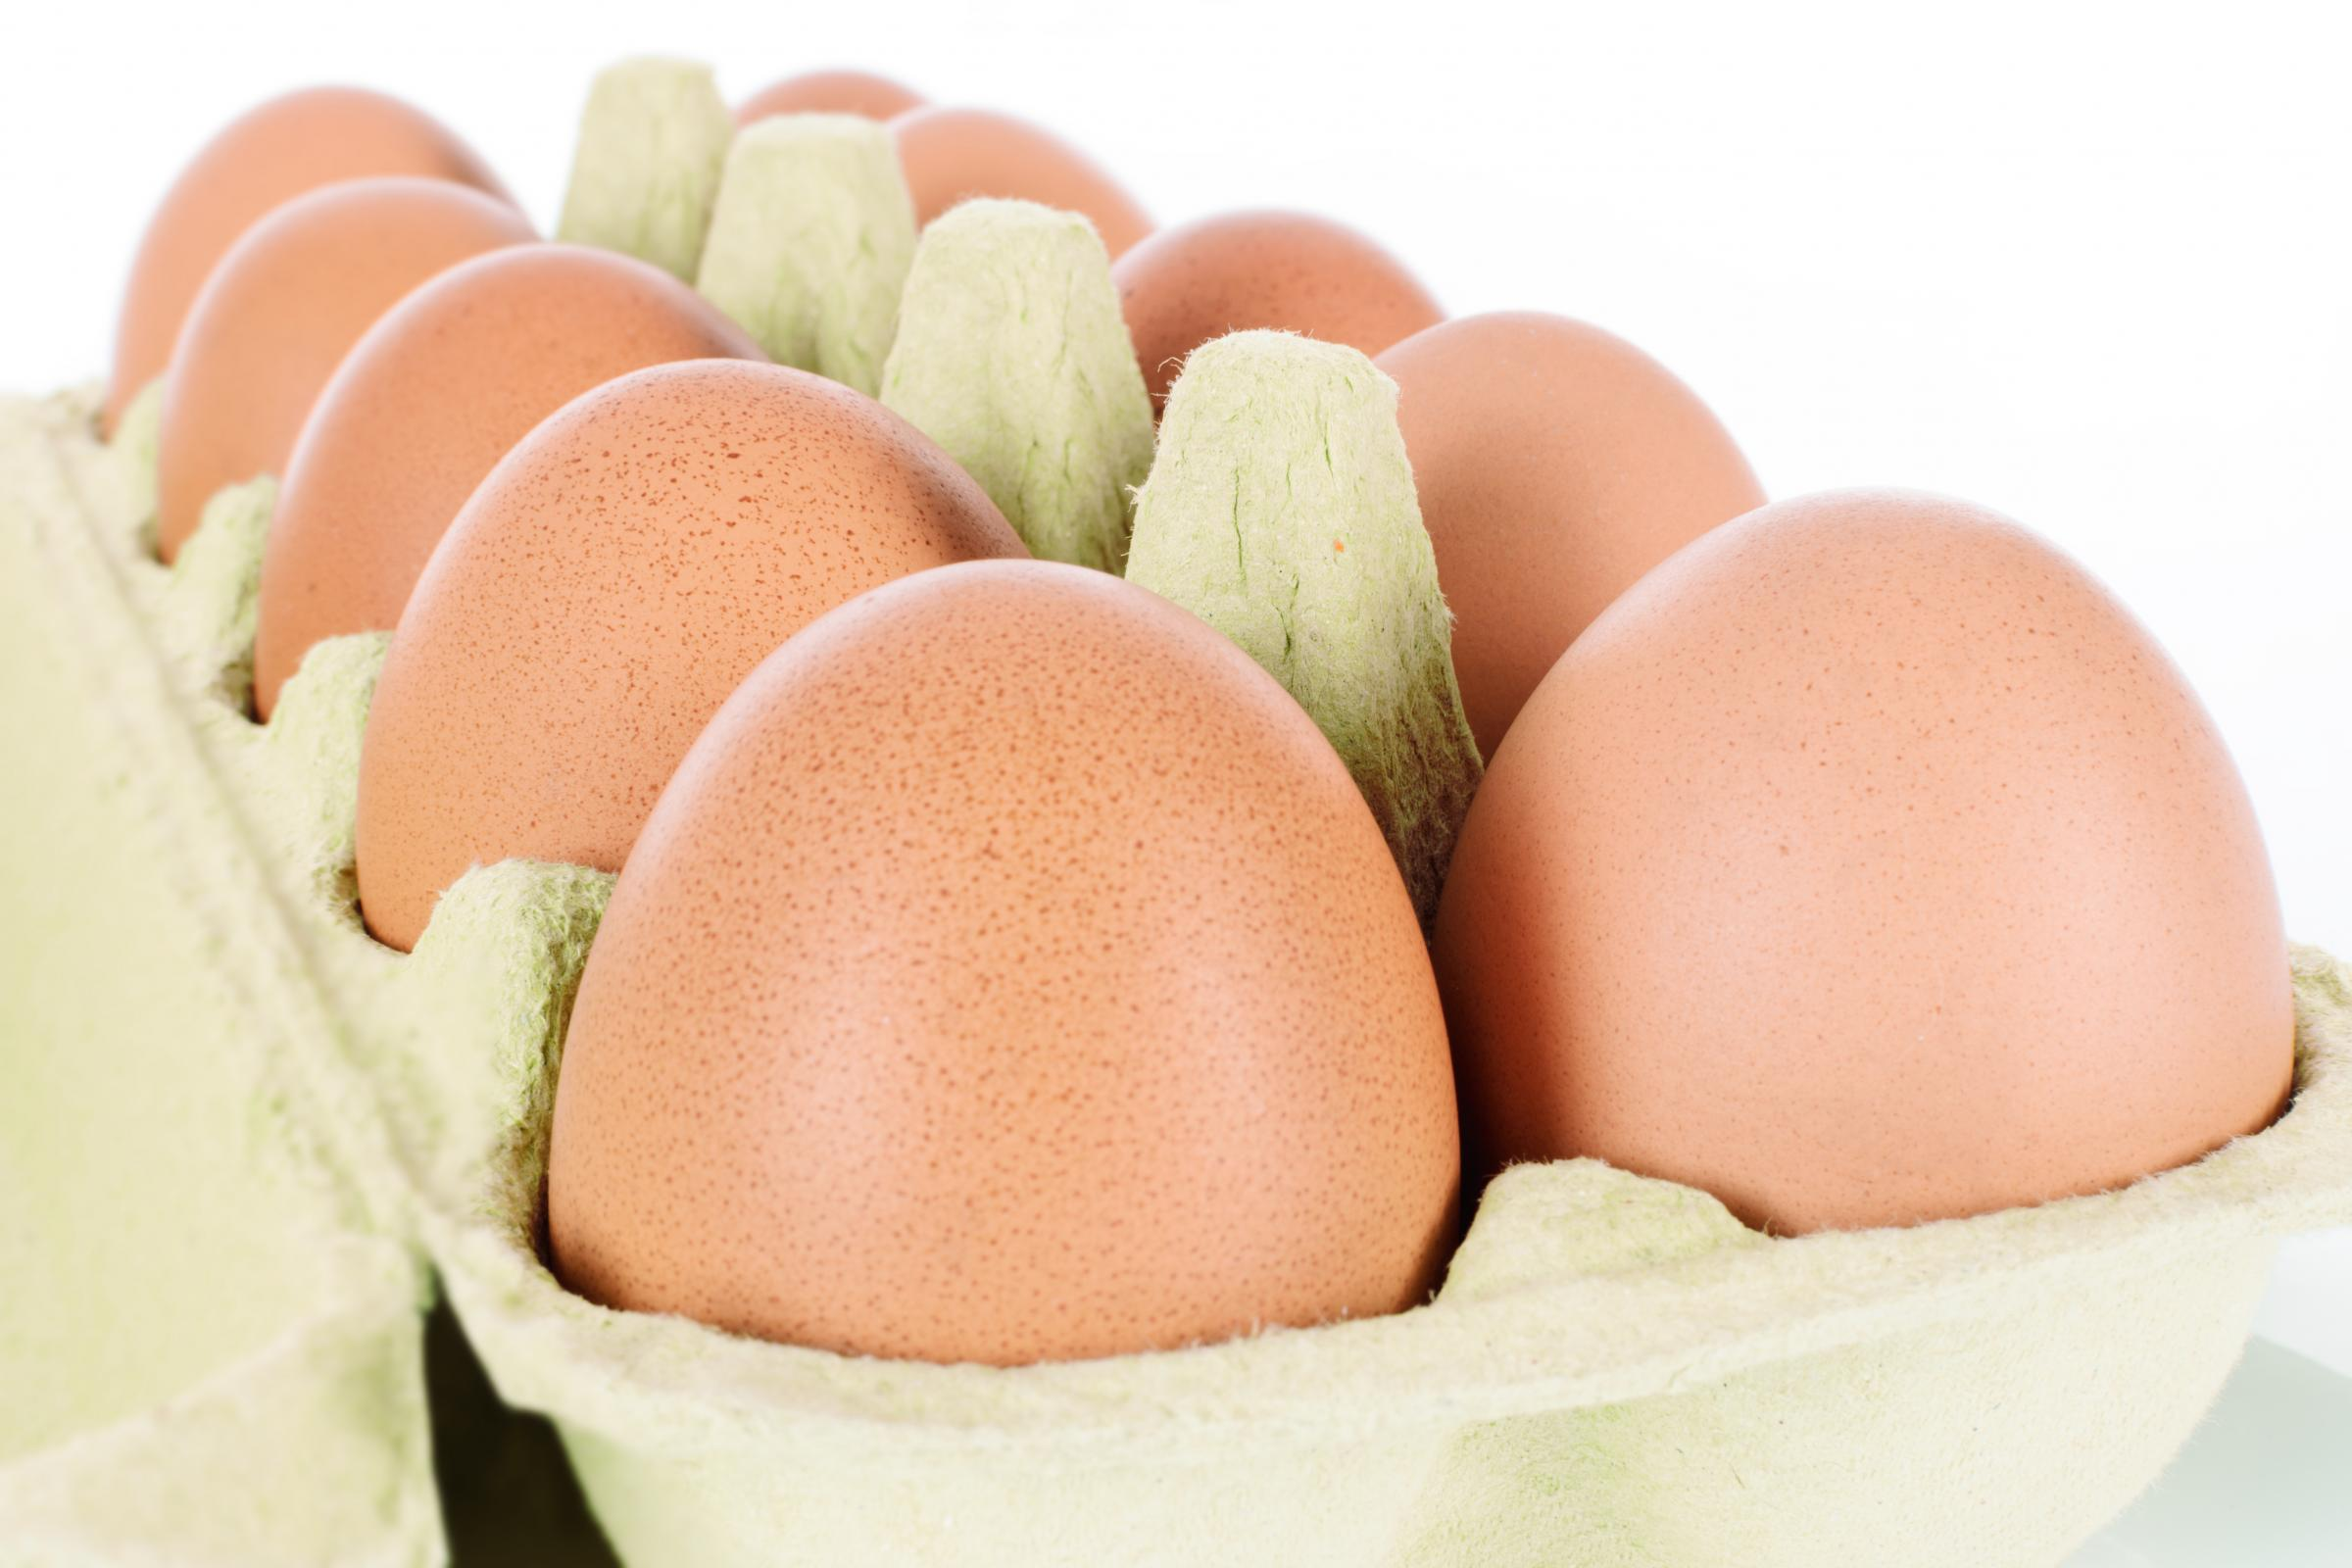 Medium eggs are as nutritional as larger sized eggs